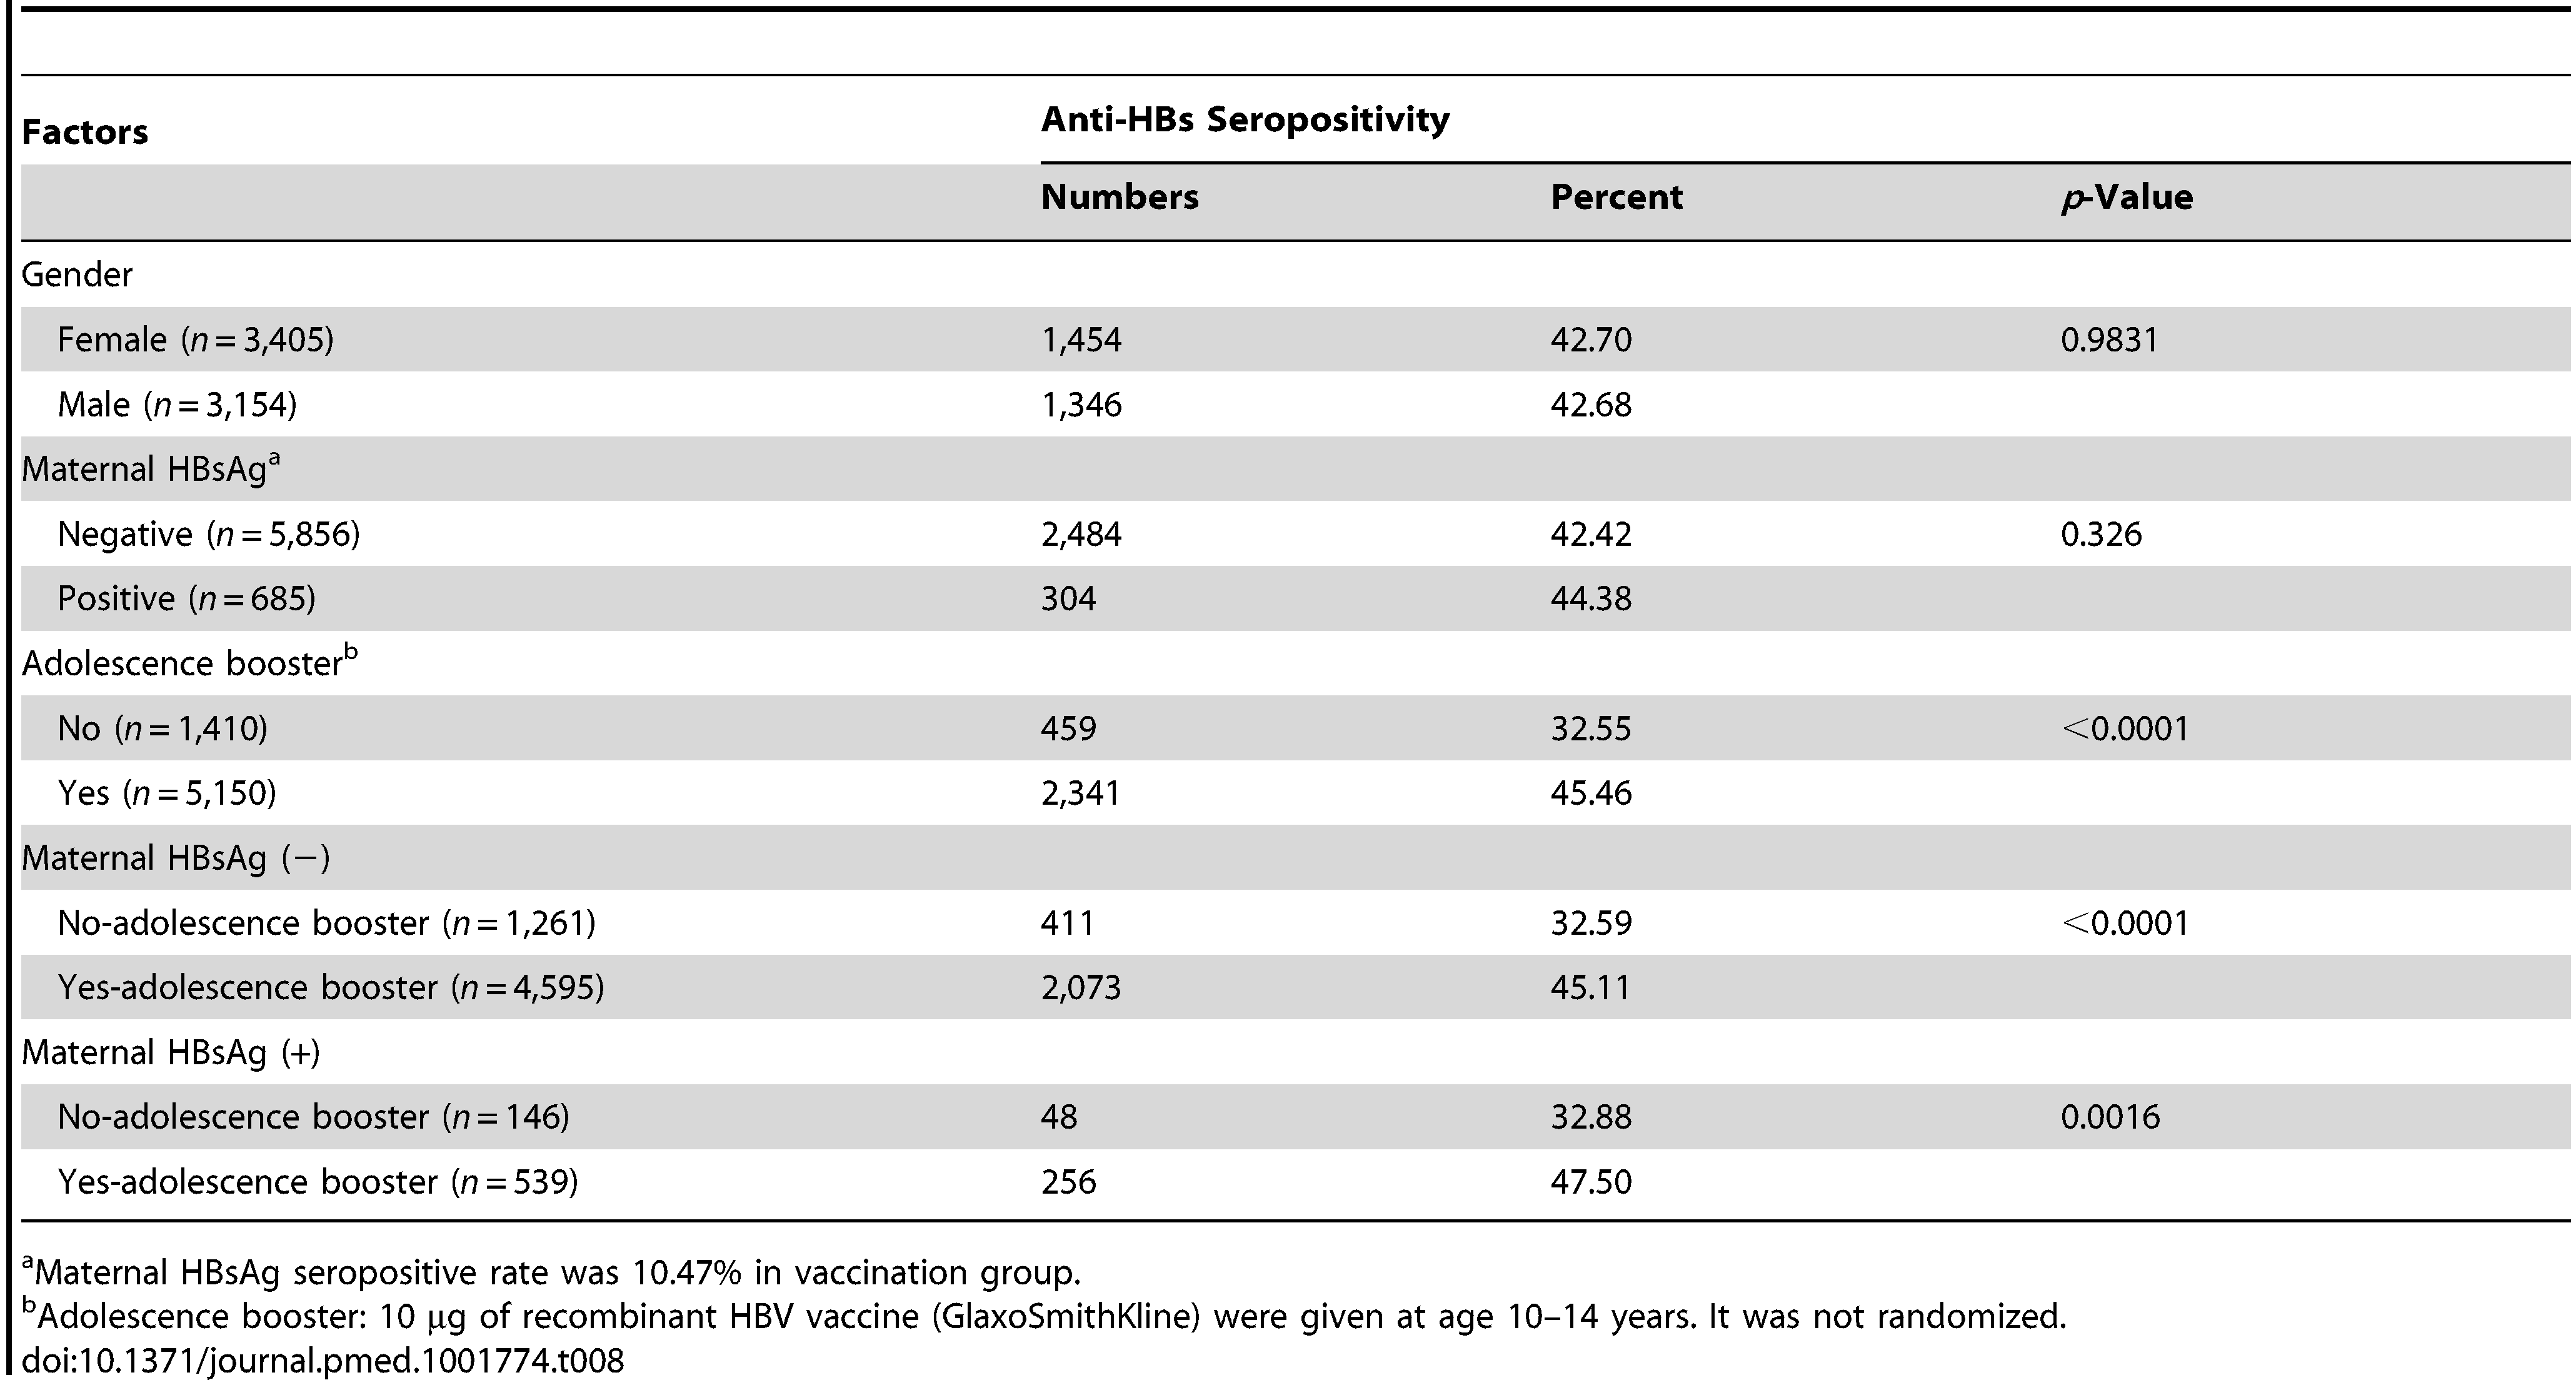 <b>Seroprevalence of anti-HBs among young adults in the neonatal vaccination group.</b>